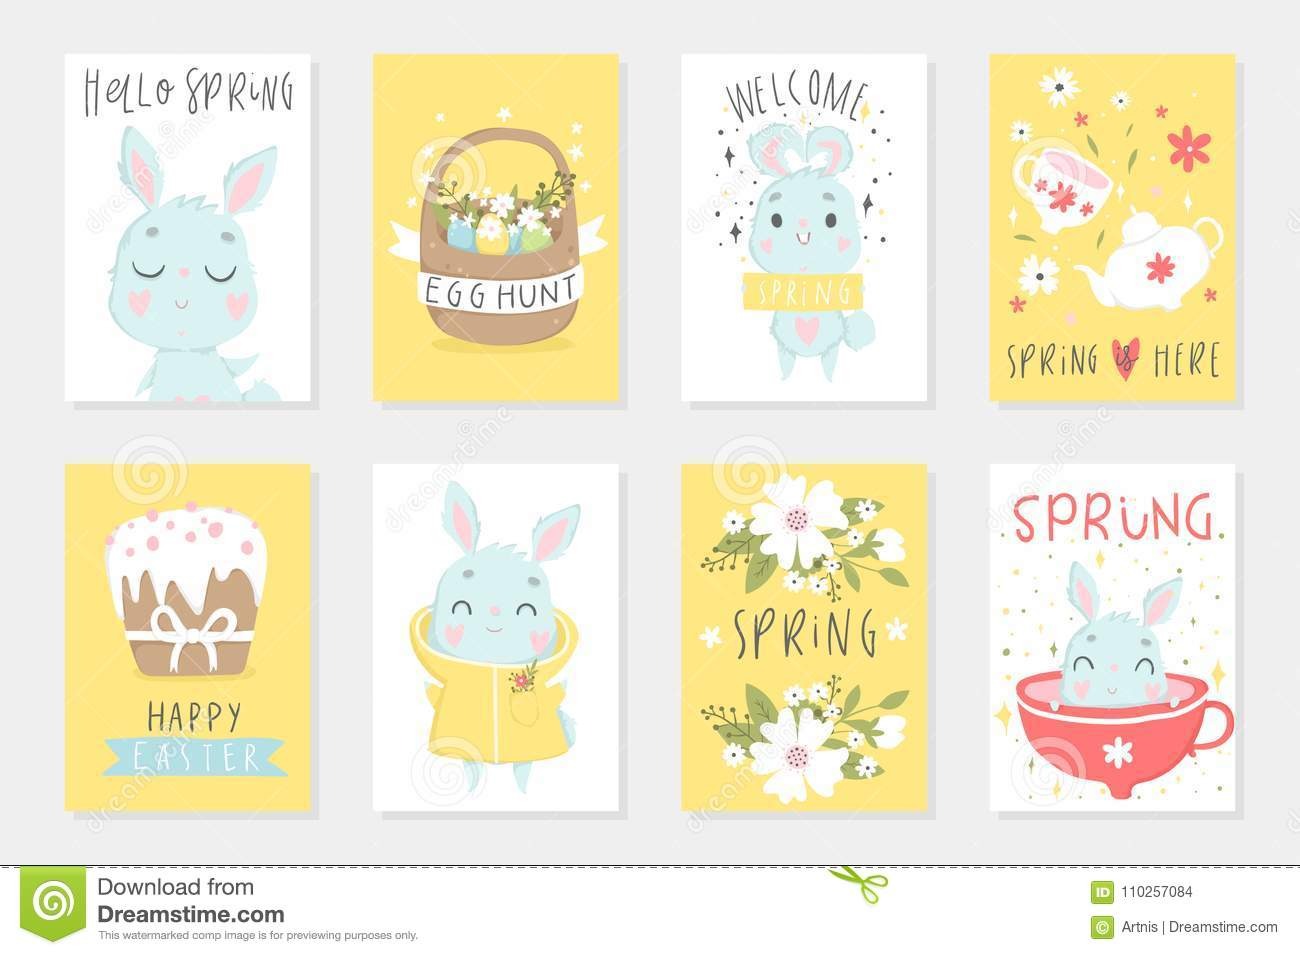 Set of easter cards with cute cartoon characters and type design set of easter cards with cute cartoon characters and type design easter greetings with bunny cups eggs and flowers vector illustration m4hsunfo